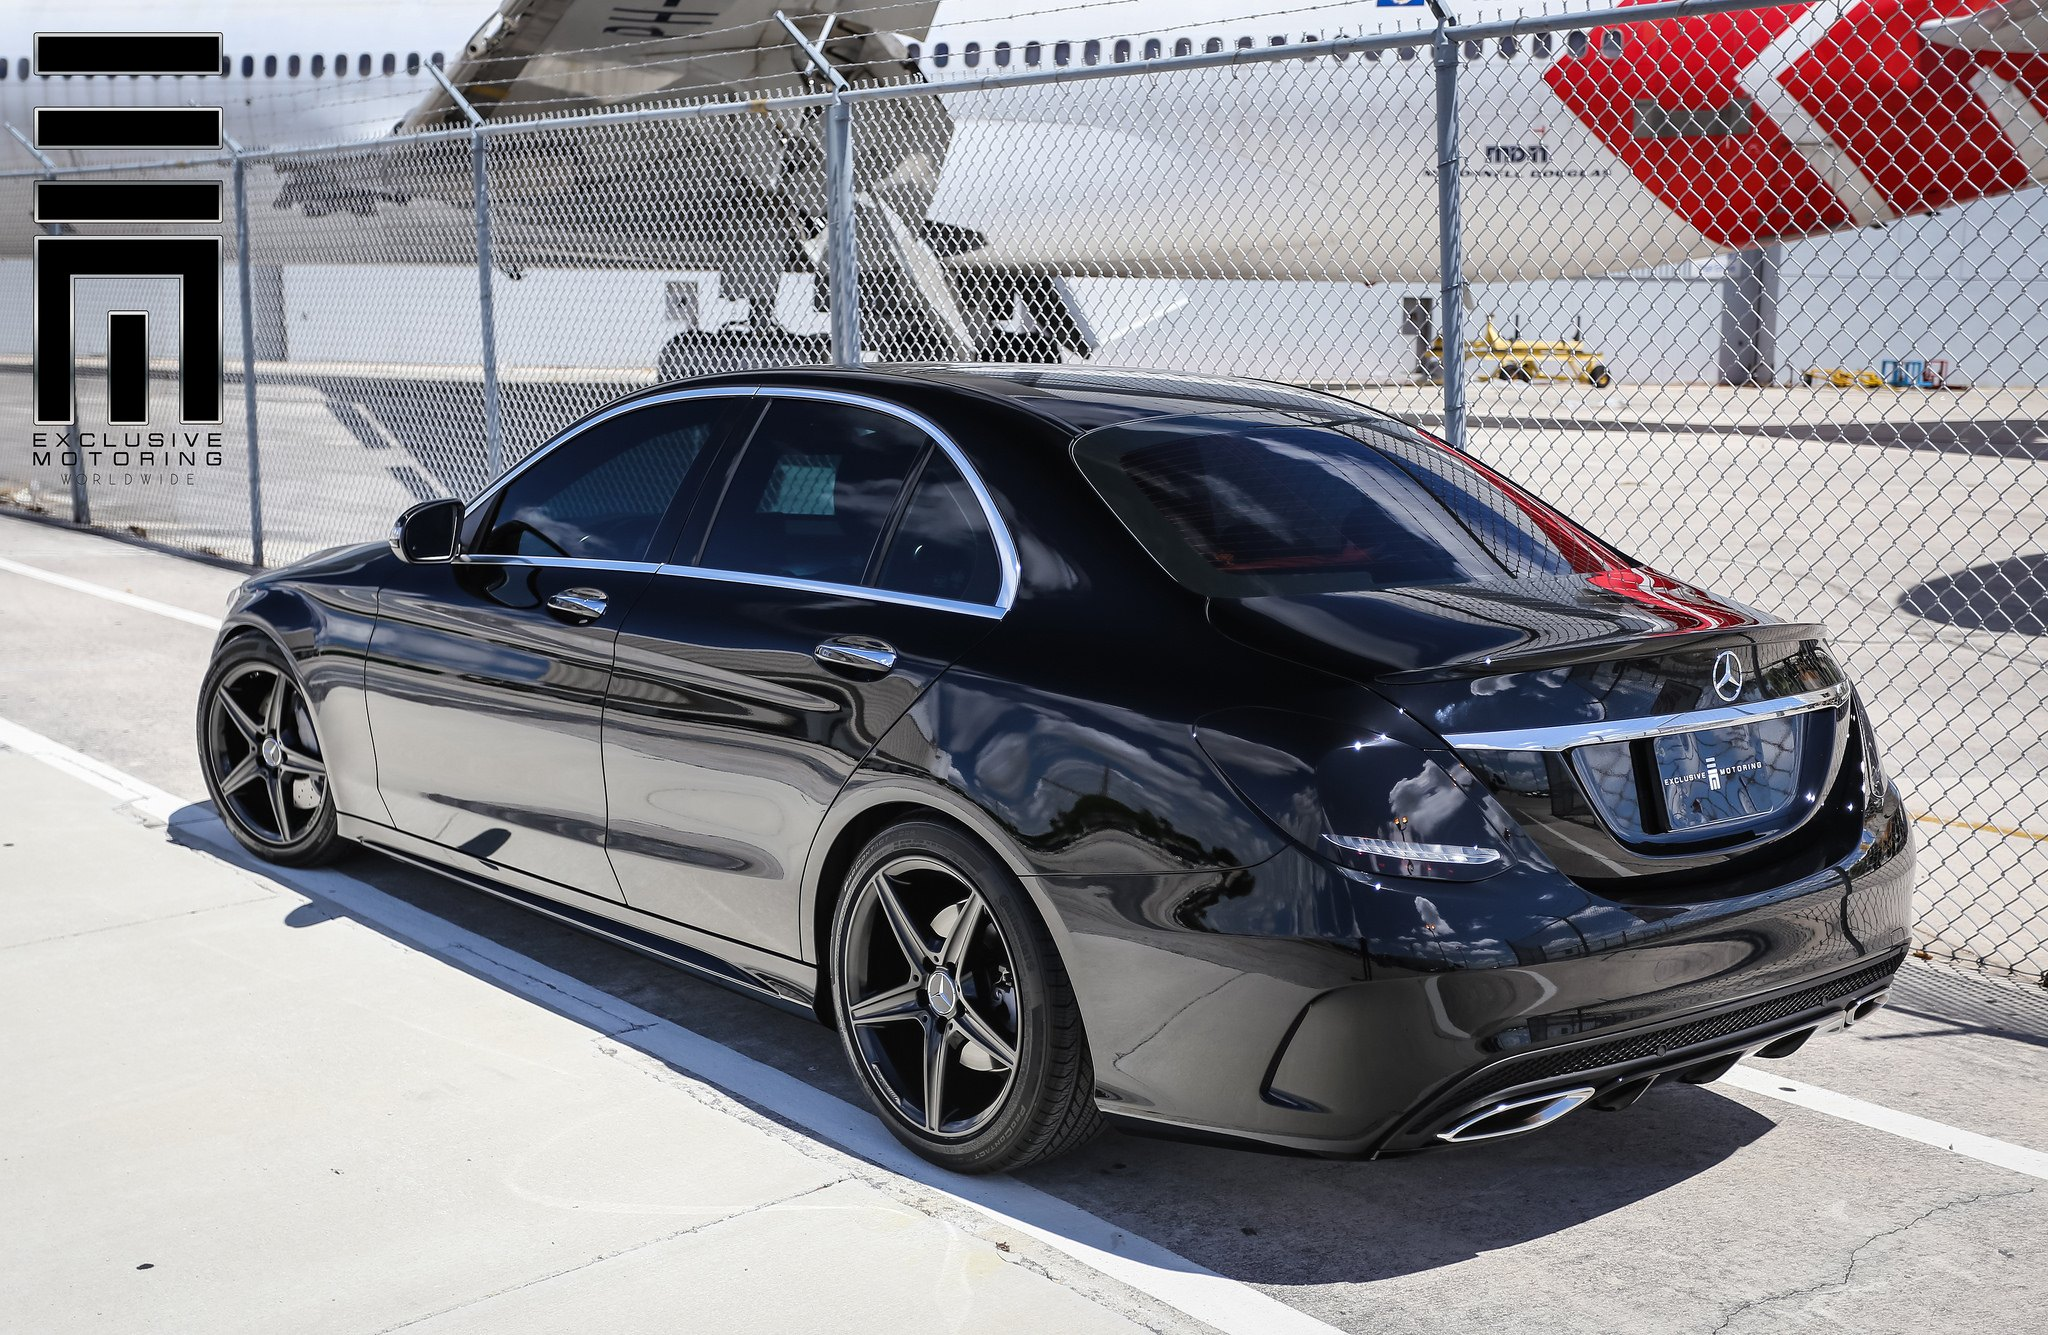 All black mercedes c class by exclusive motoring carid for Mercedes benz body shop miami